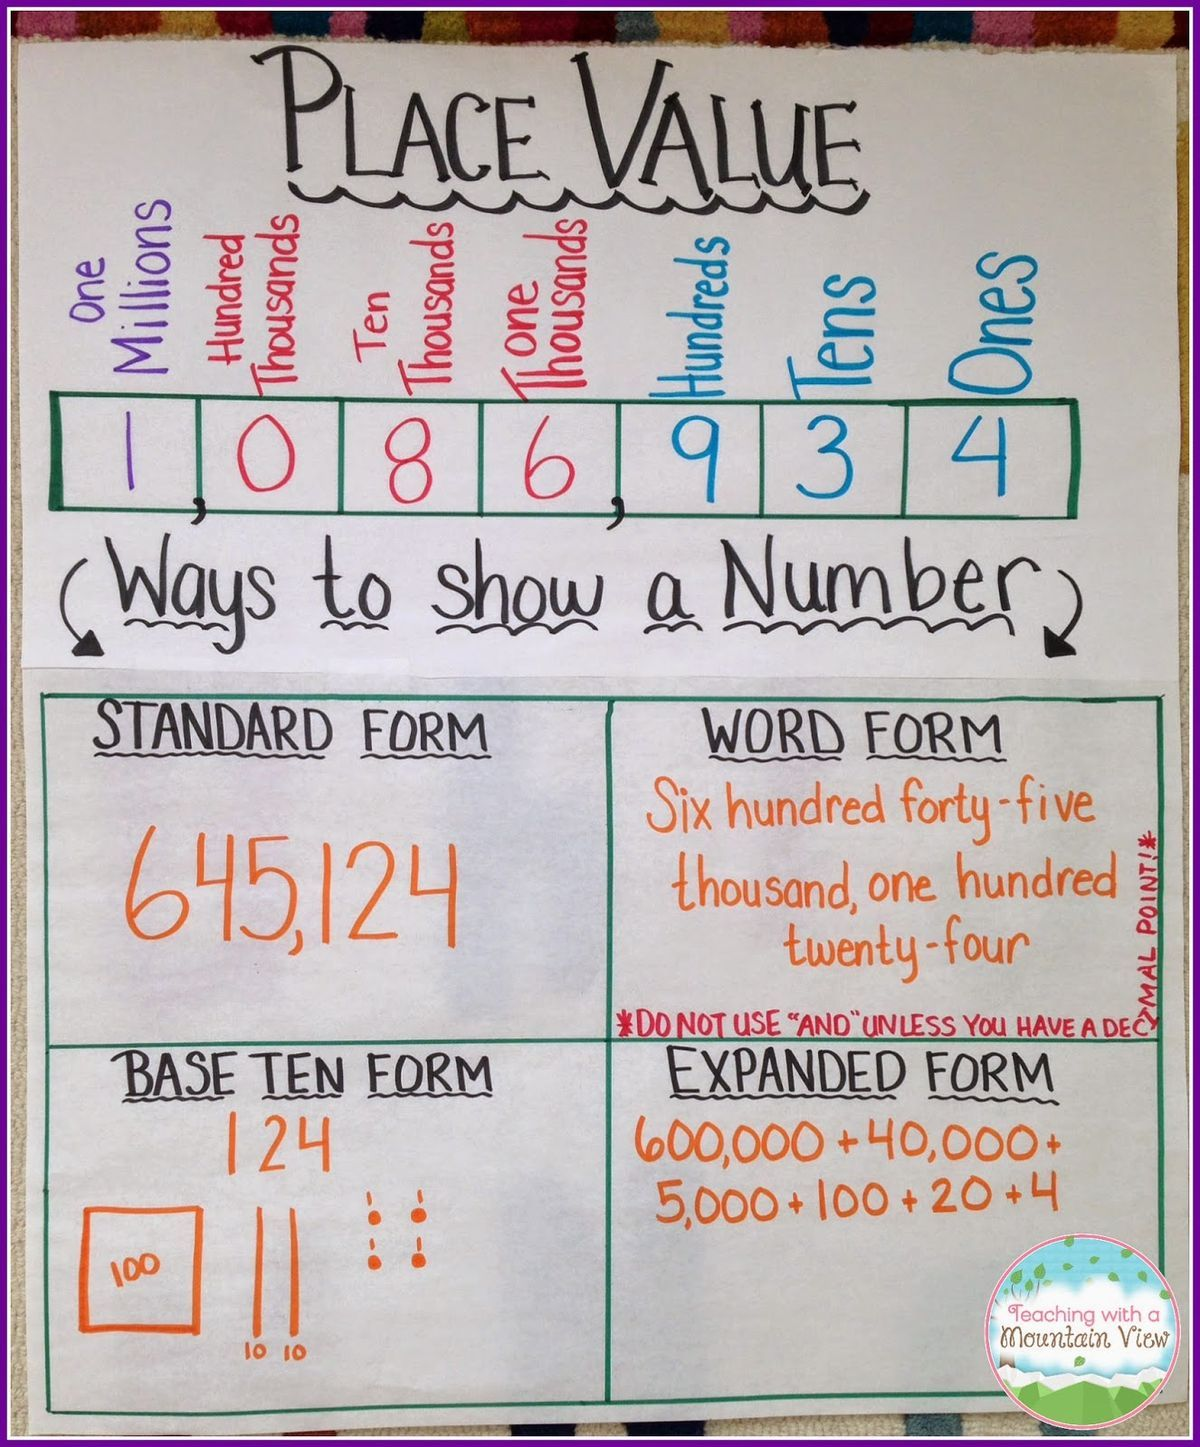 Teaching with a mountain view teaching place value year strategies and resources for building place value and number sense skills in grades geenschuldenfo Image collections